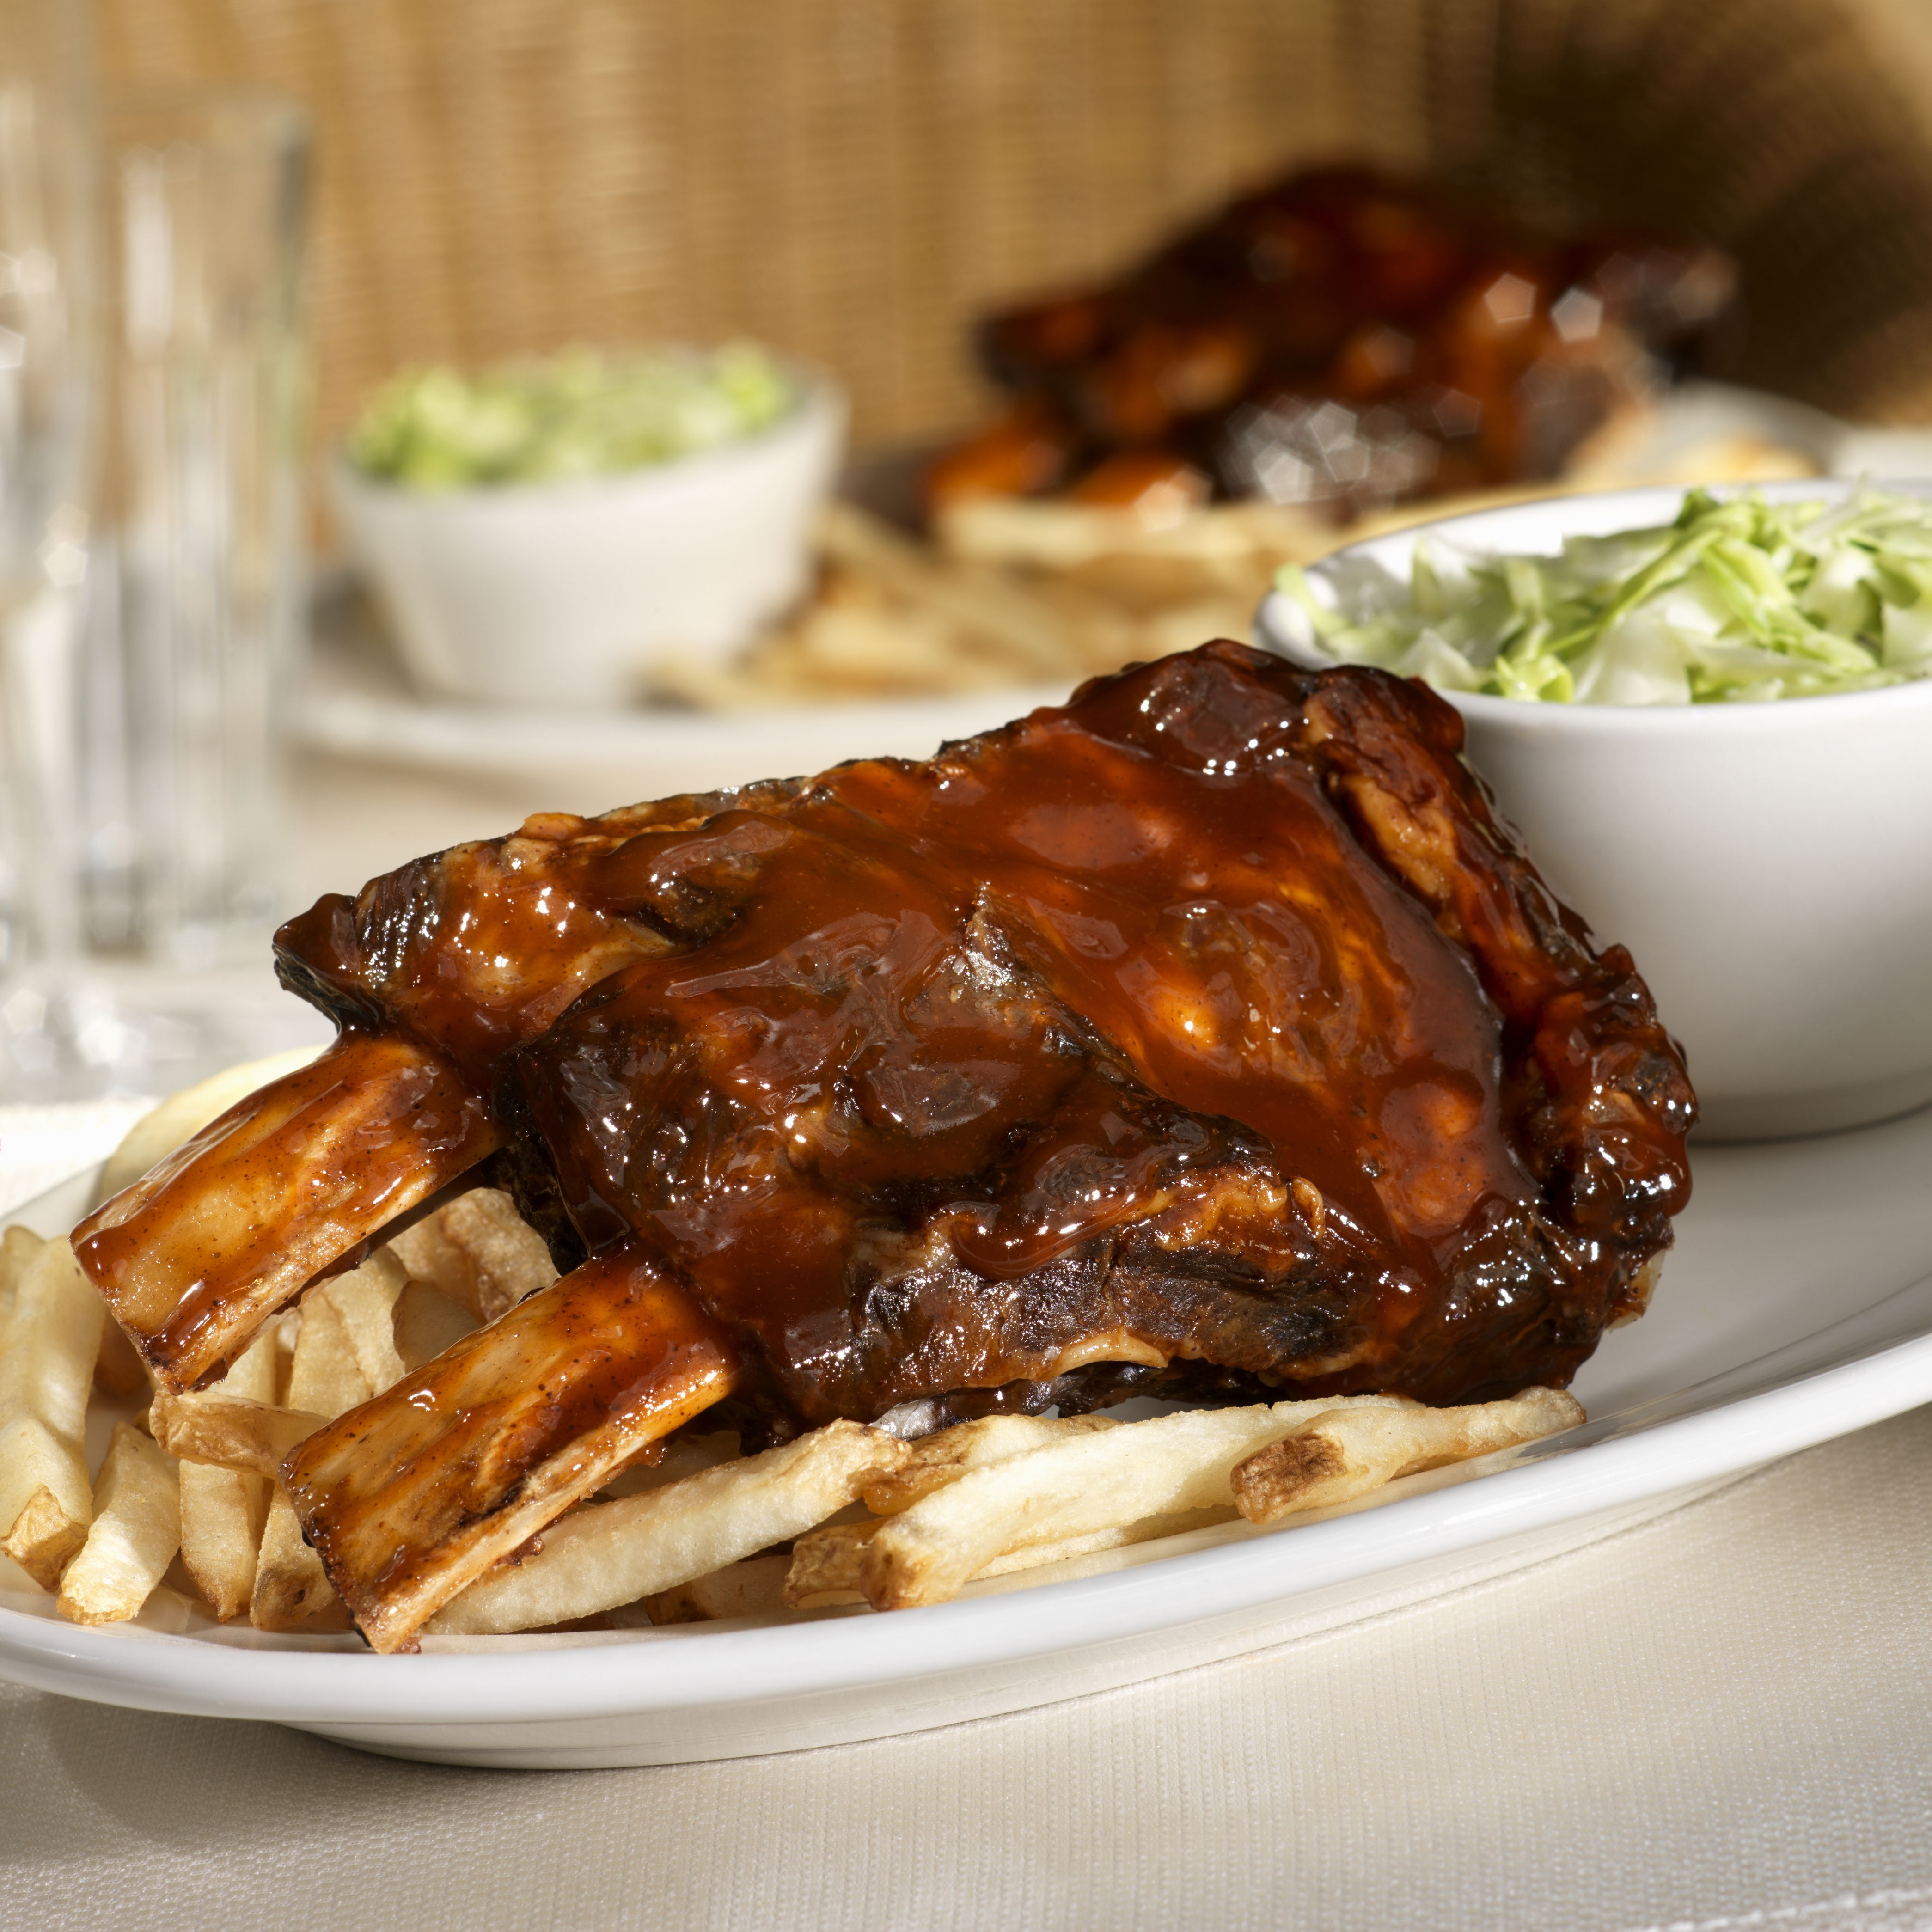 Top 9 Beef Rib Recipes – From Grilling to Smoking